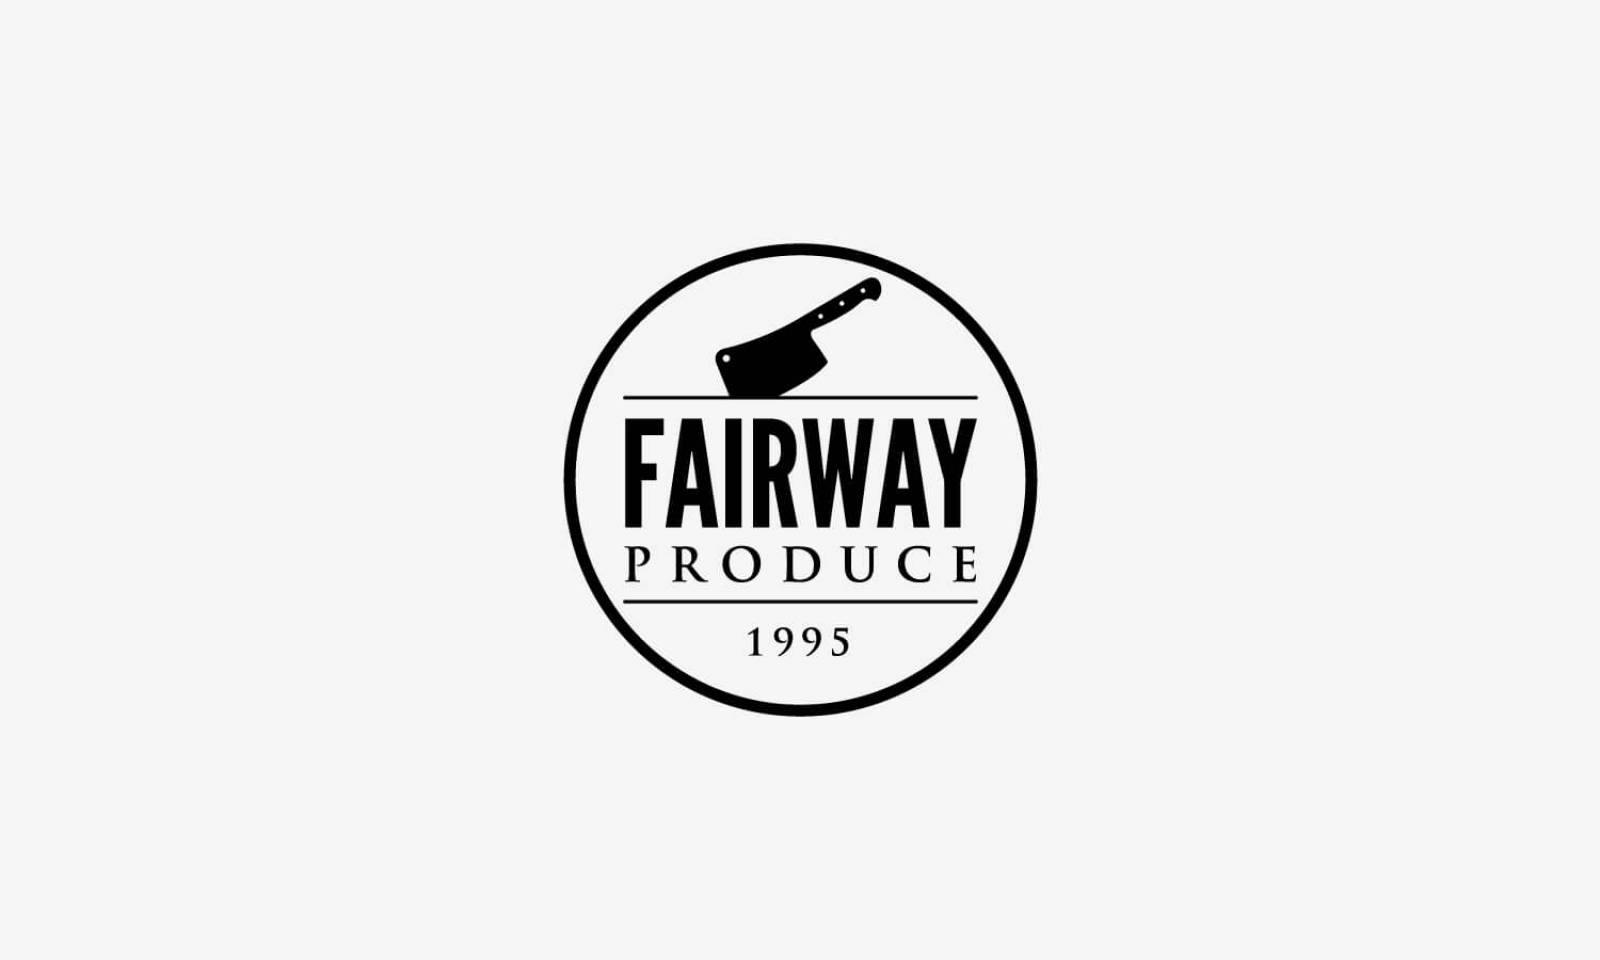 Fairway-produce-logo-3-design-agency-graphic-design-canterbury.jpg